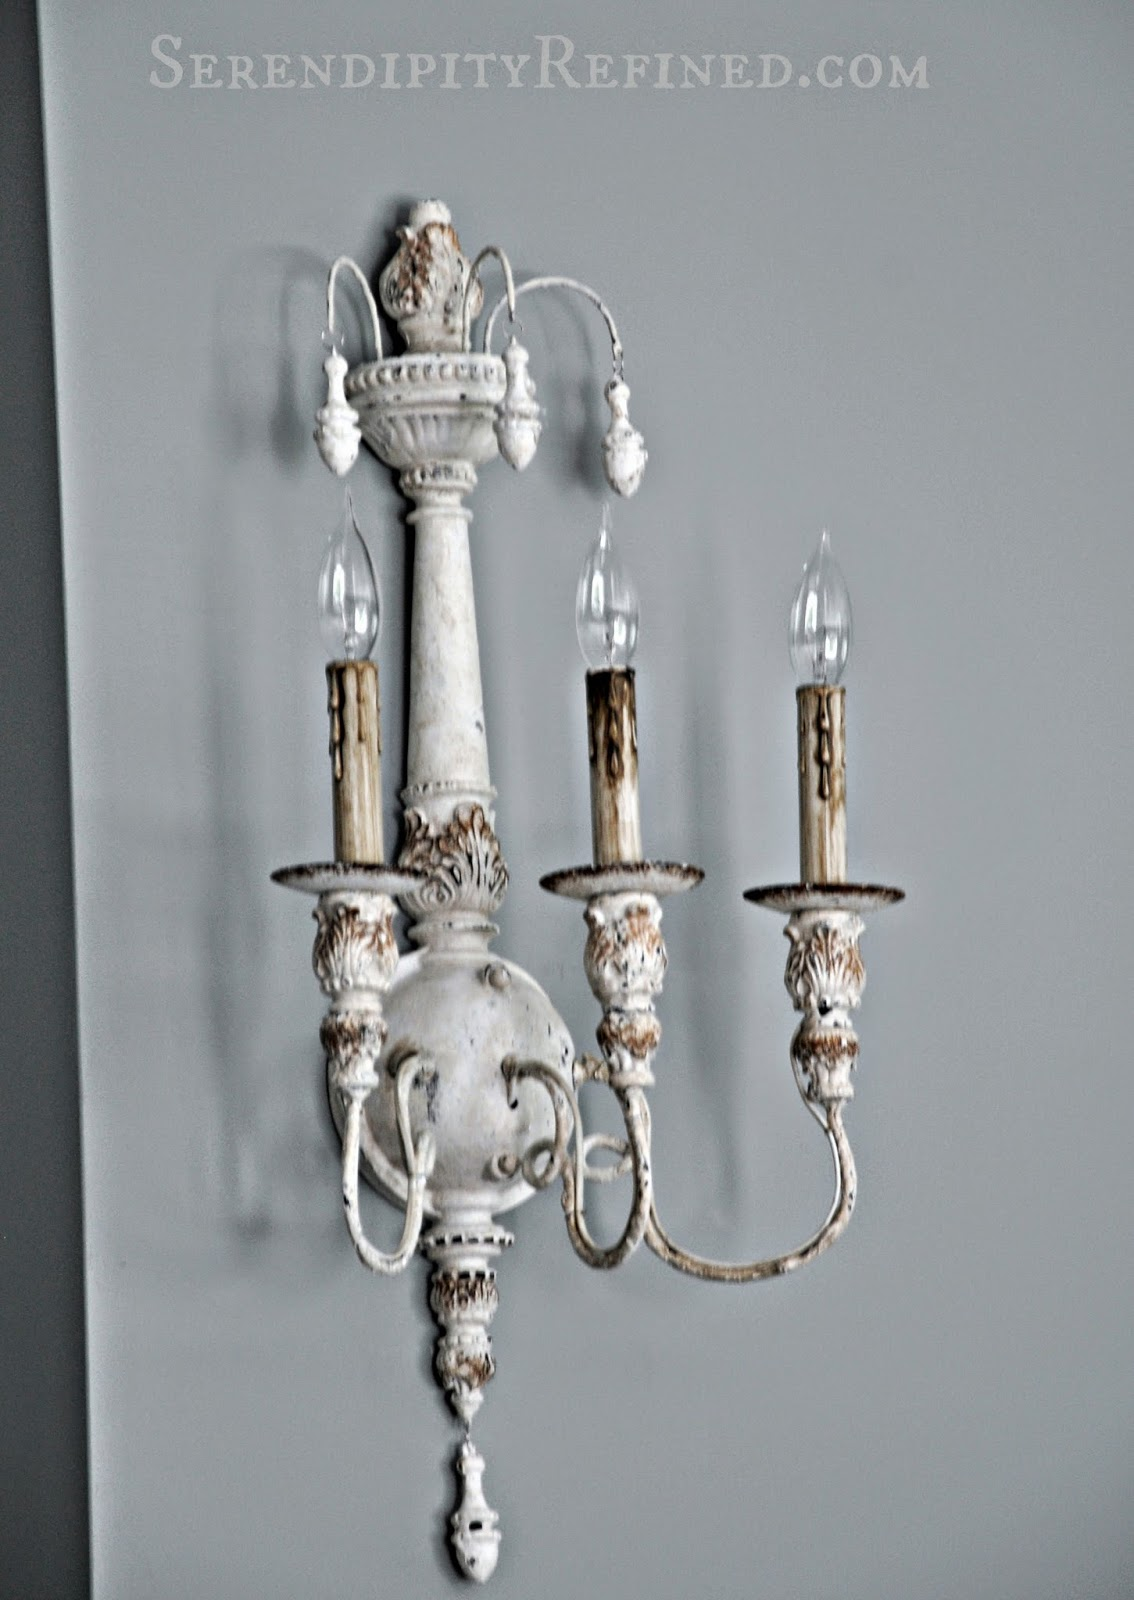 Serendipity refined blog french country light fixtures for French country bathroom lighting